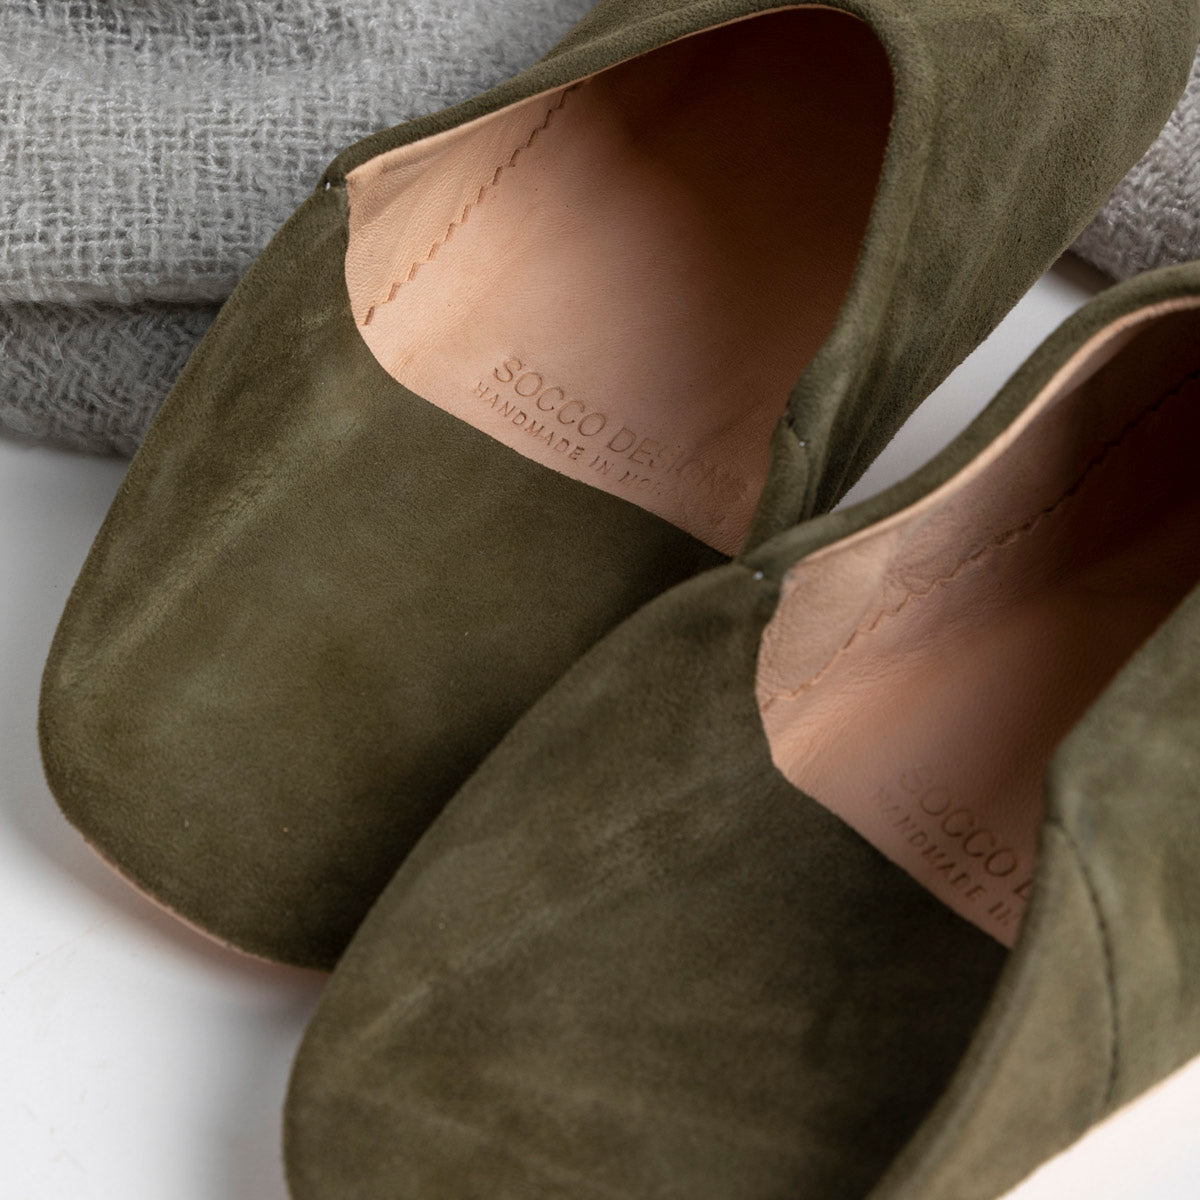 Moroccan Babouche Slippers in Olive available at PICNIC SF